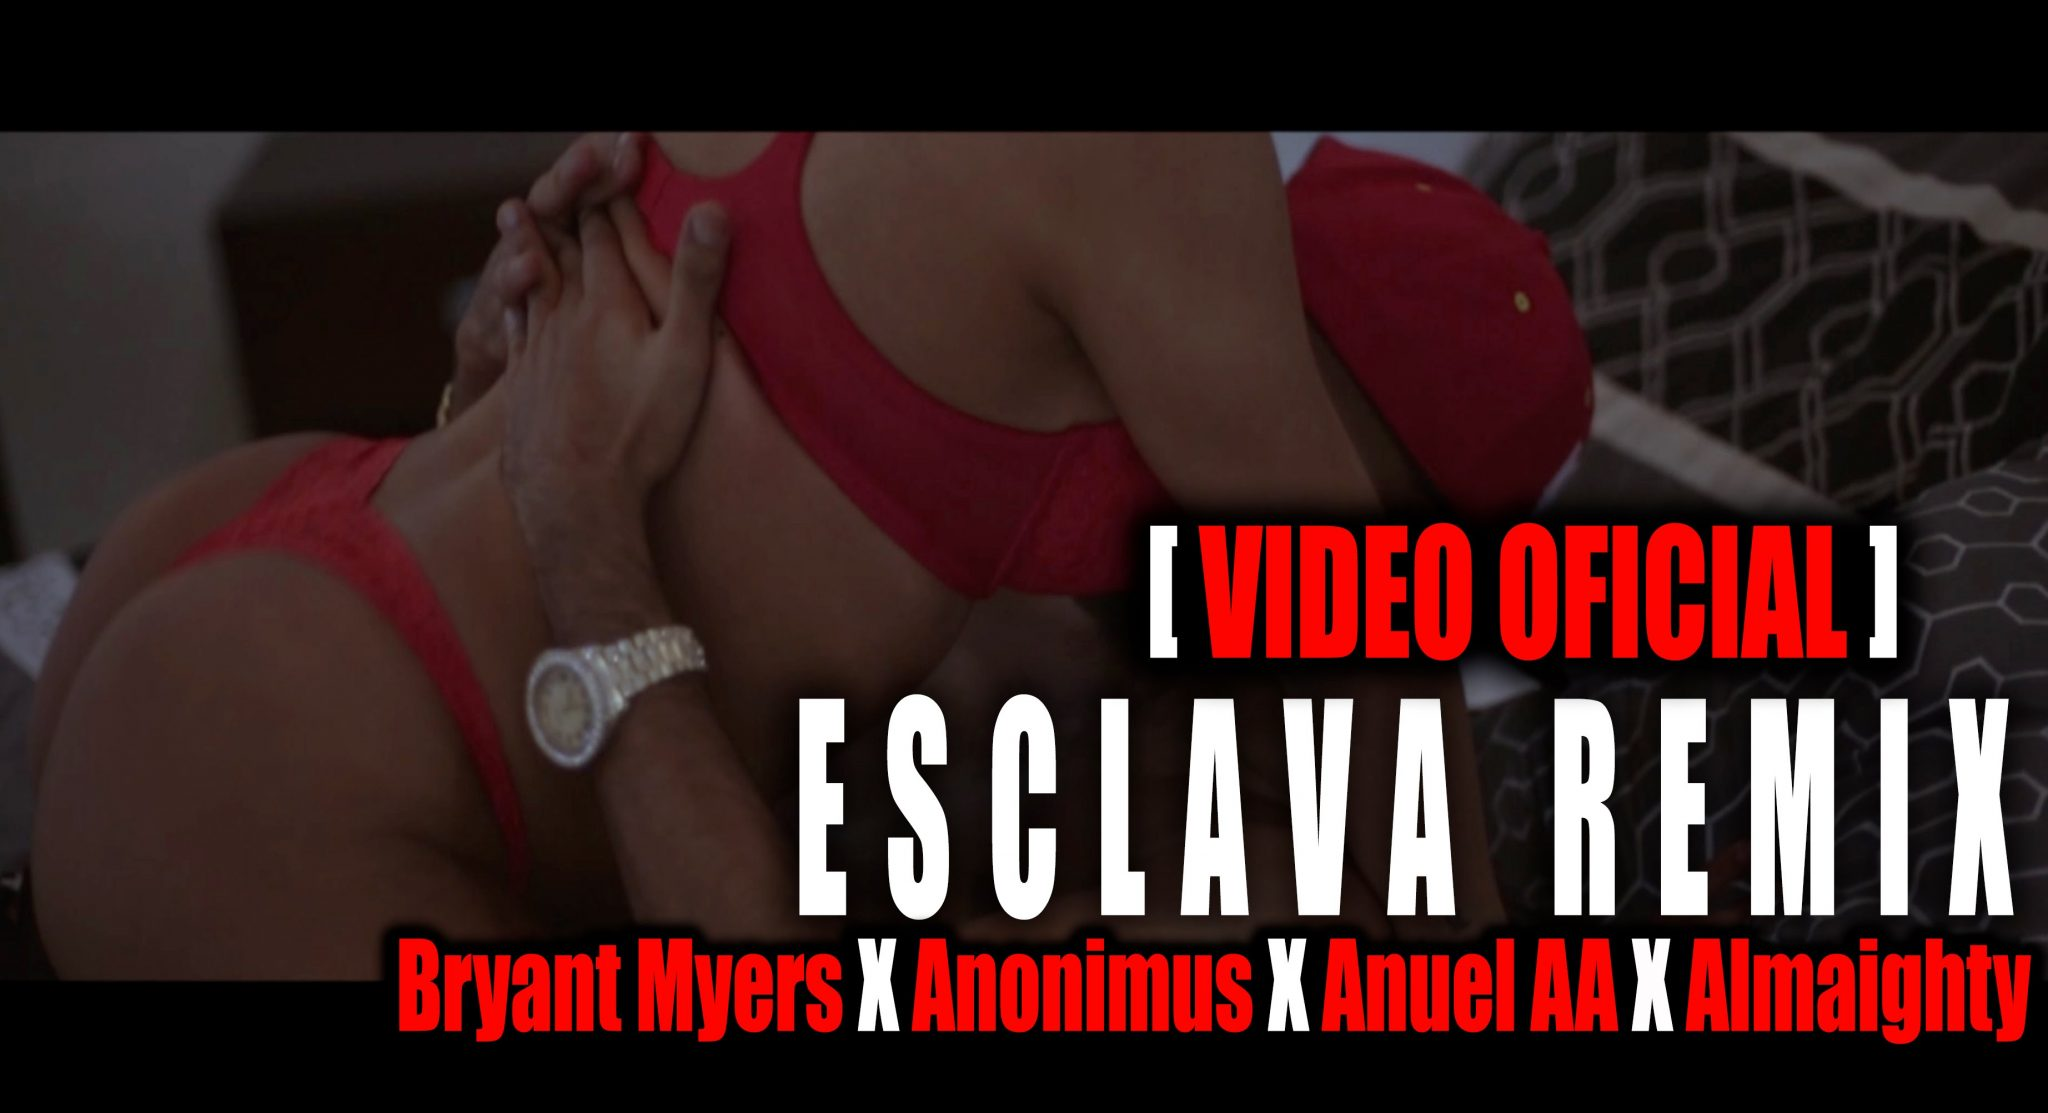 bryant myers feat anonimus anuel - Bryant Myers Feat Anonimus, Anuel AA y Almaighty - Esclava Remix (Video Oficial)